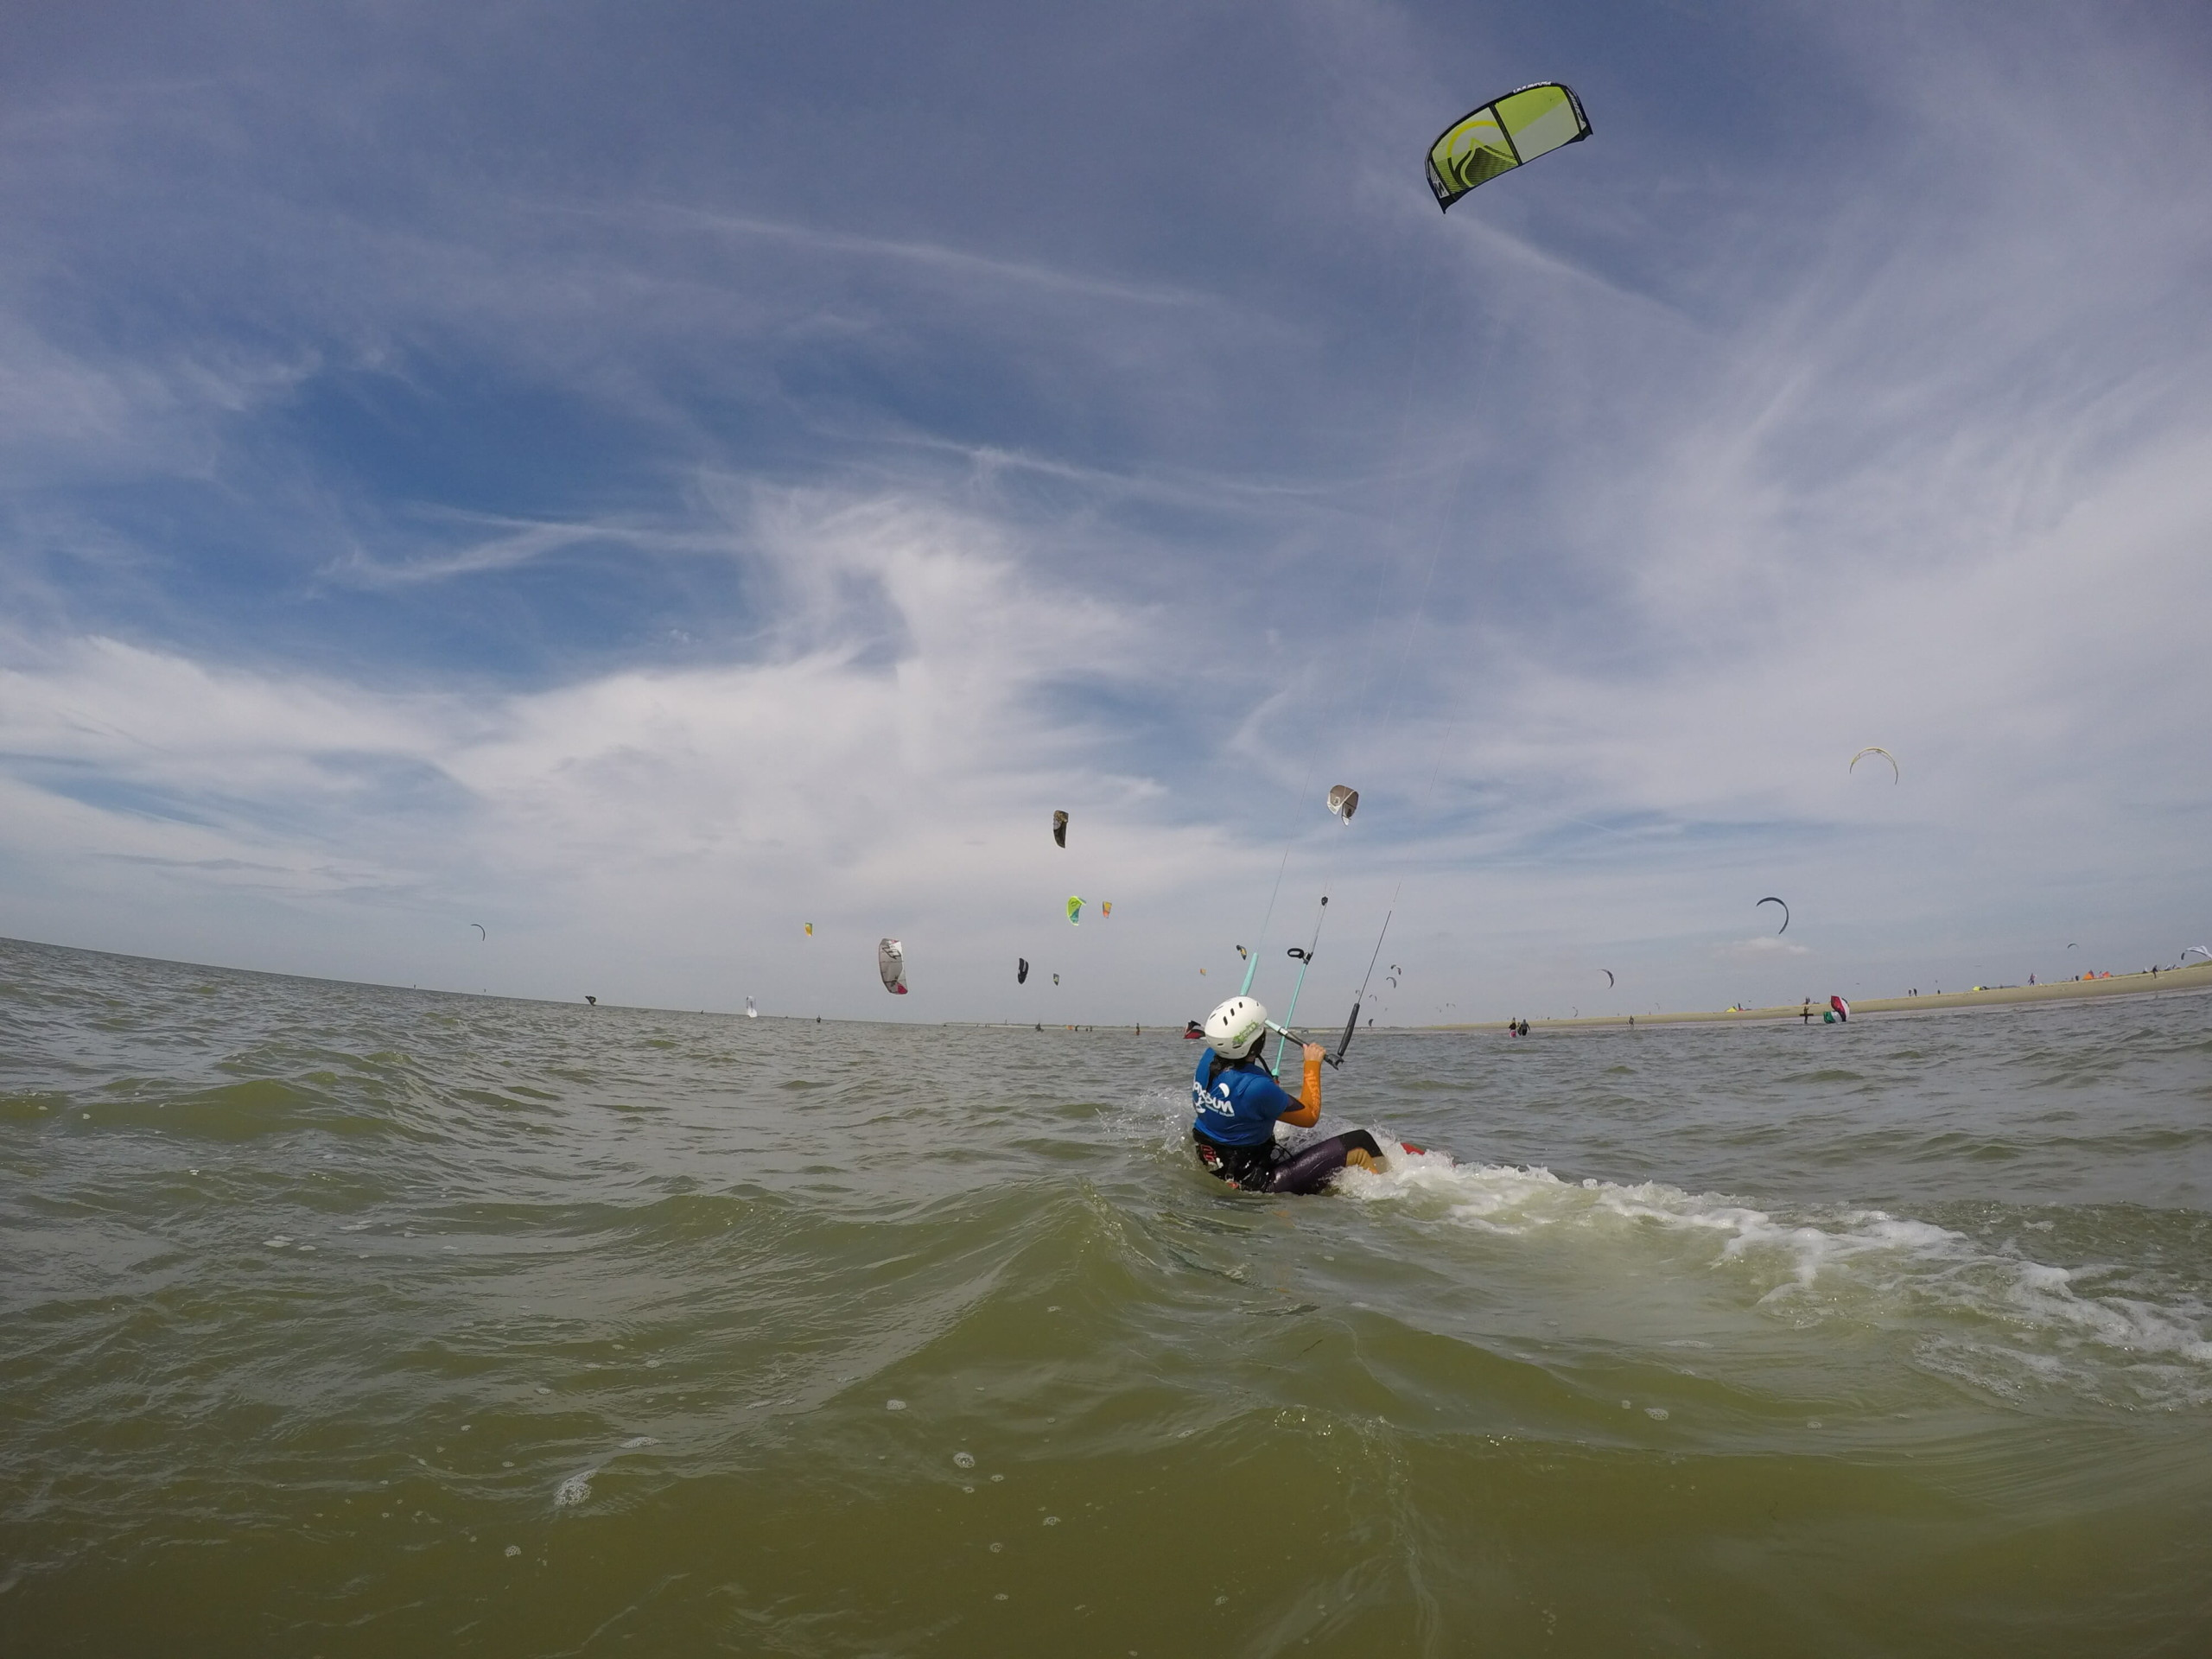 Eug and the Bro @ Brouwersdam Kitesurf Beach